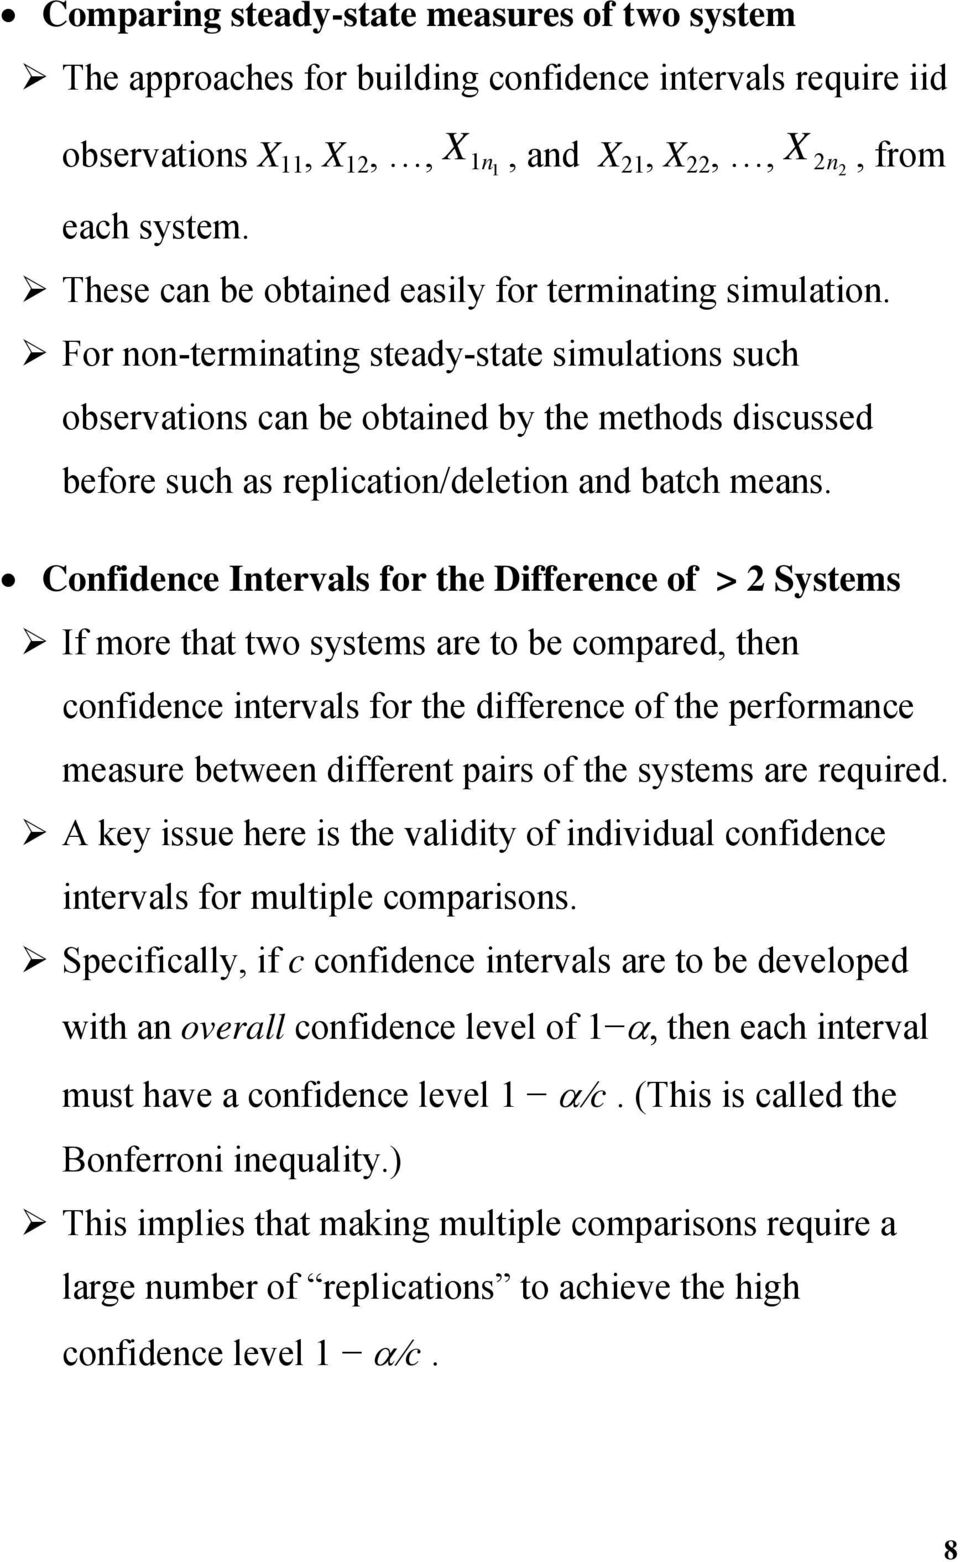 Cofidece Itervals for the Differece of > Systems If more that two systems are to be compared, the, from cofidece itervals for the differece of the performace measure betwee differet pairs of the